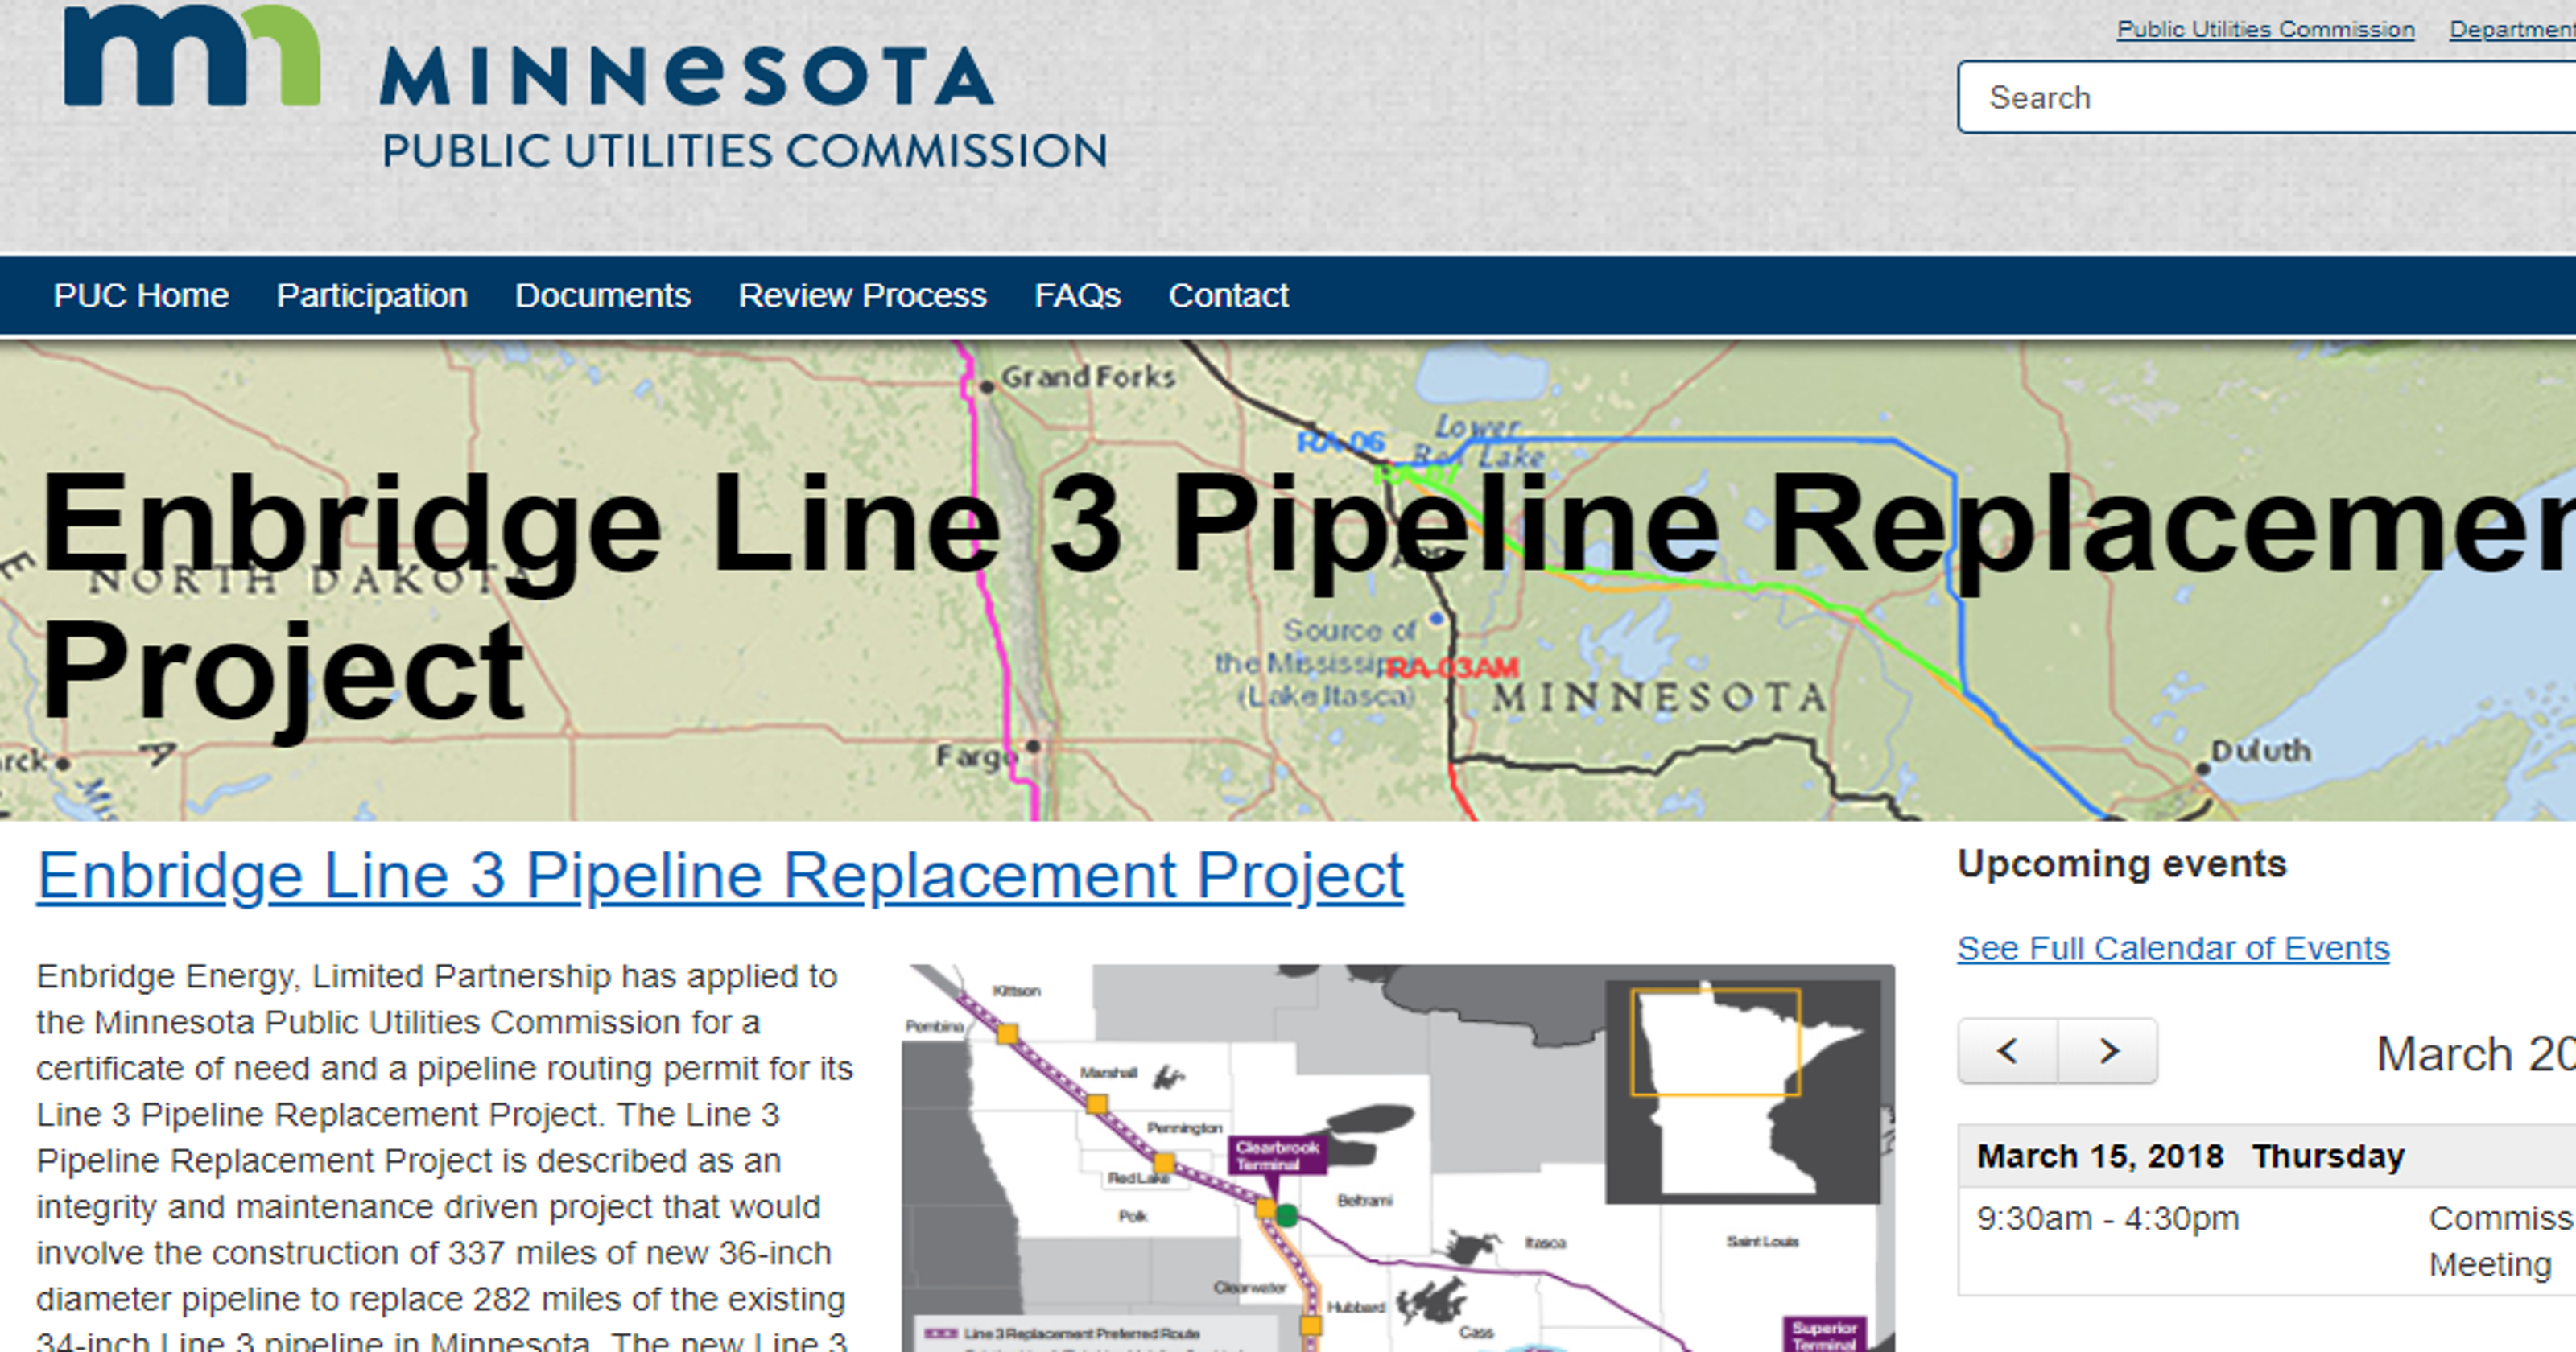 Bill allowing Enbridge pipeline without regulatory approval